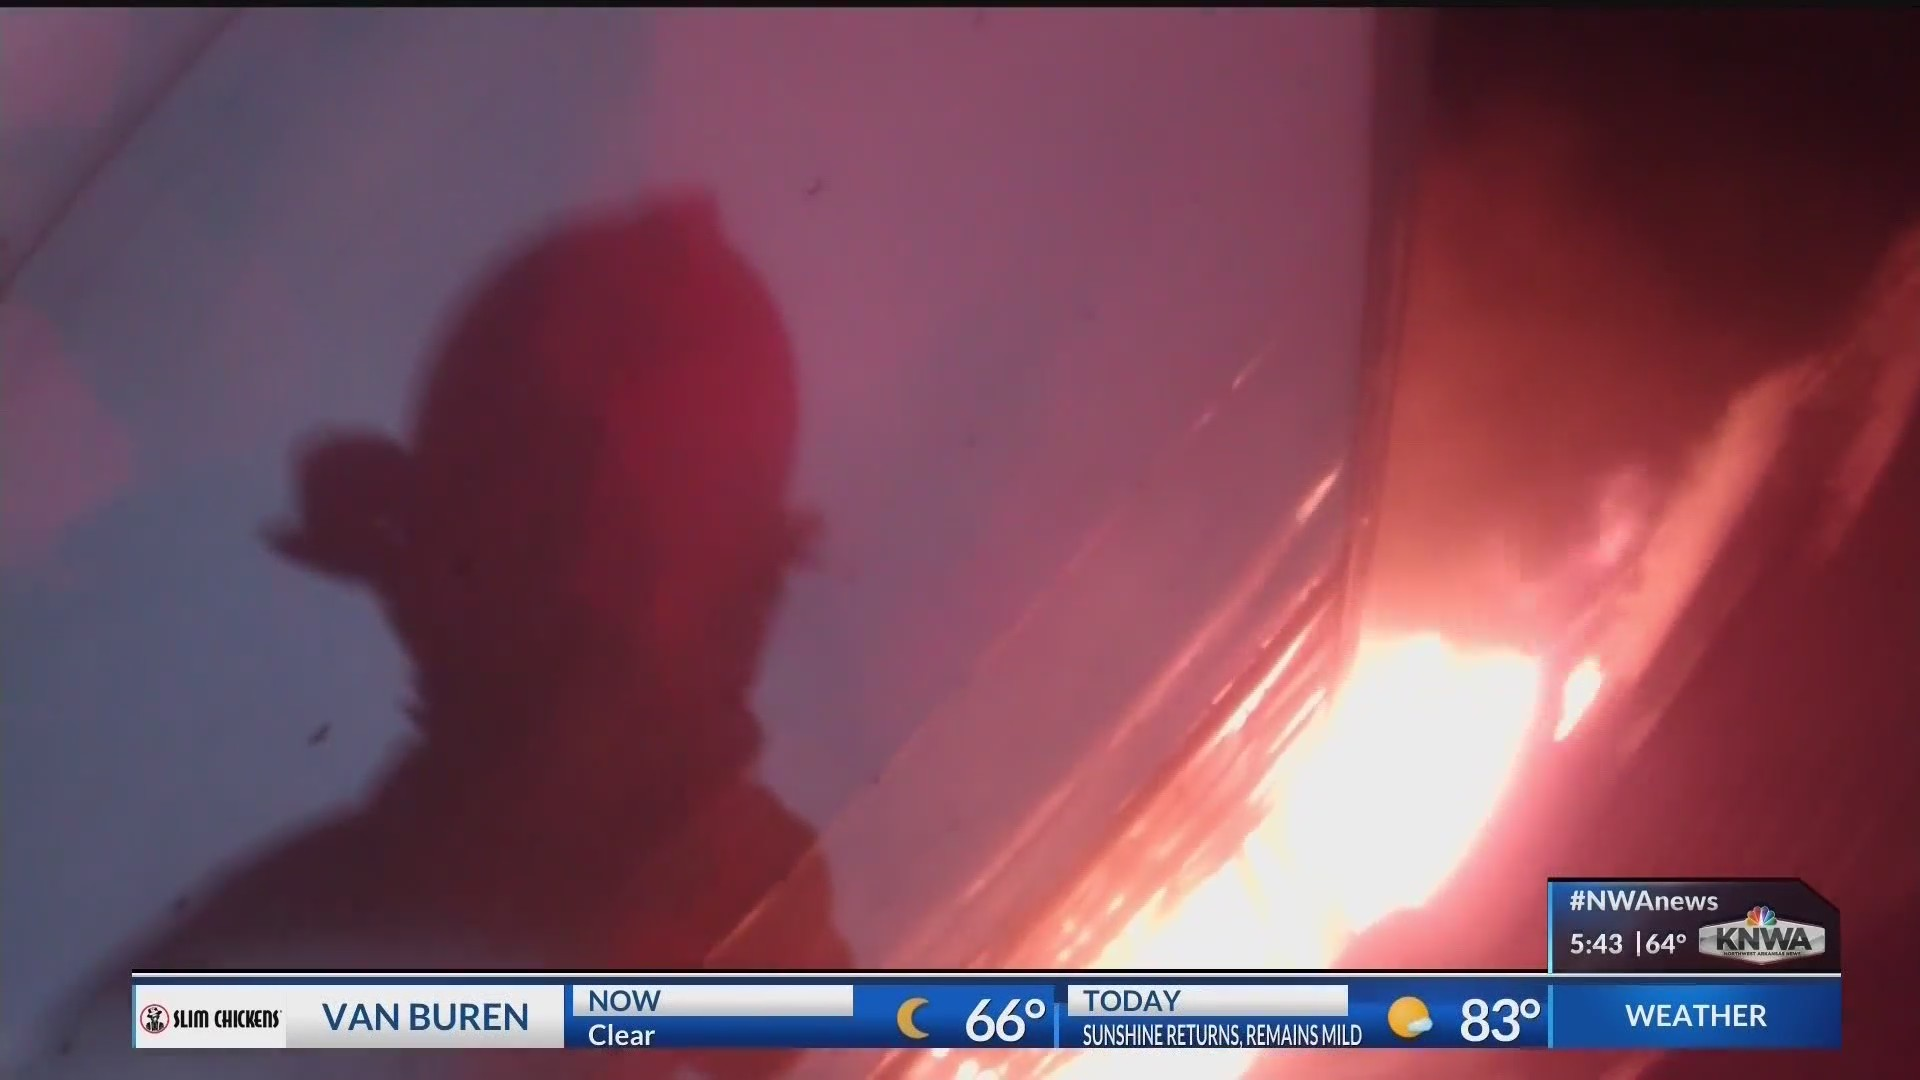 KNWA_Early_Today_Saving_Our_Firefighters_0_20190516111652-60106293